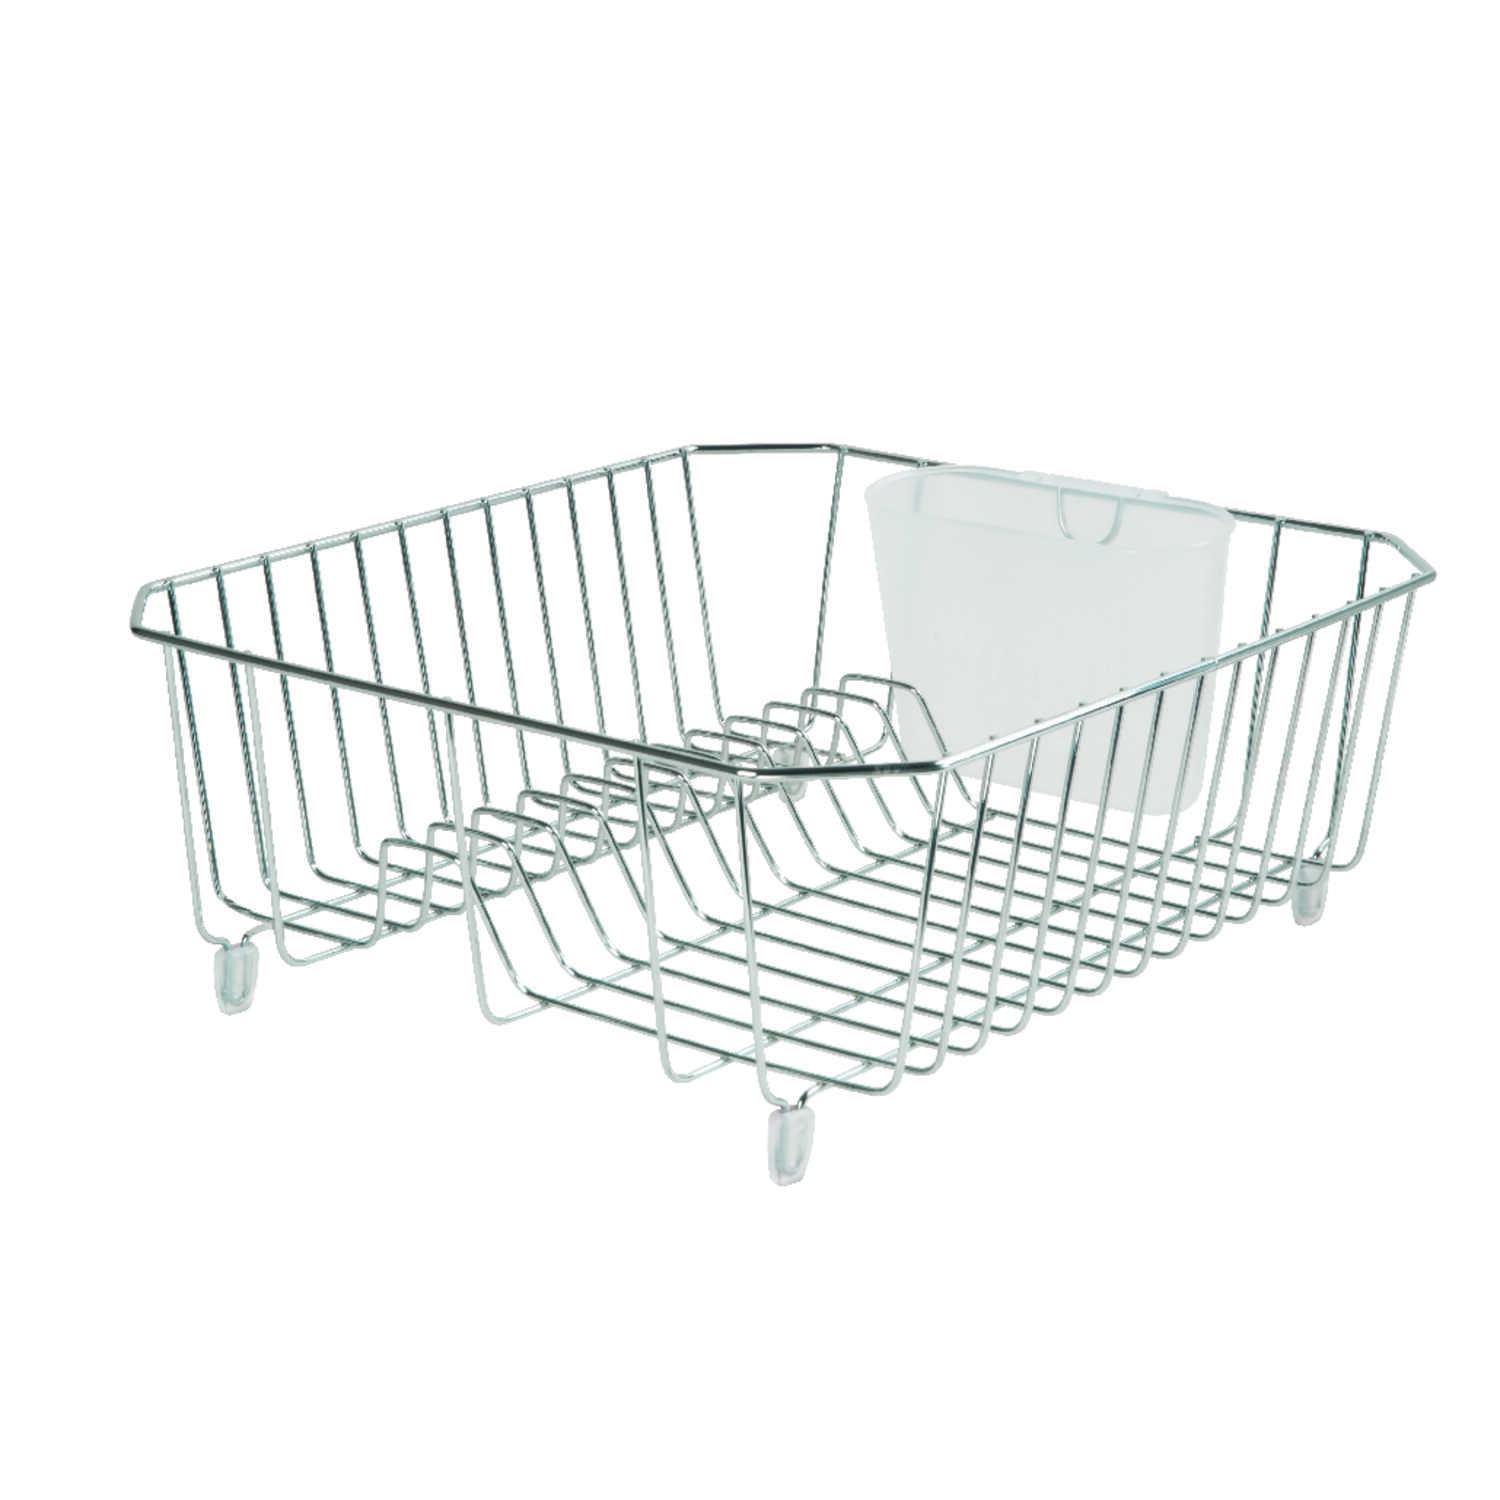 Rubbermaid  5.3 in. H x 14.3 in. L x 12.4 in. W Dish Drainer  Chrome  Steel